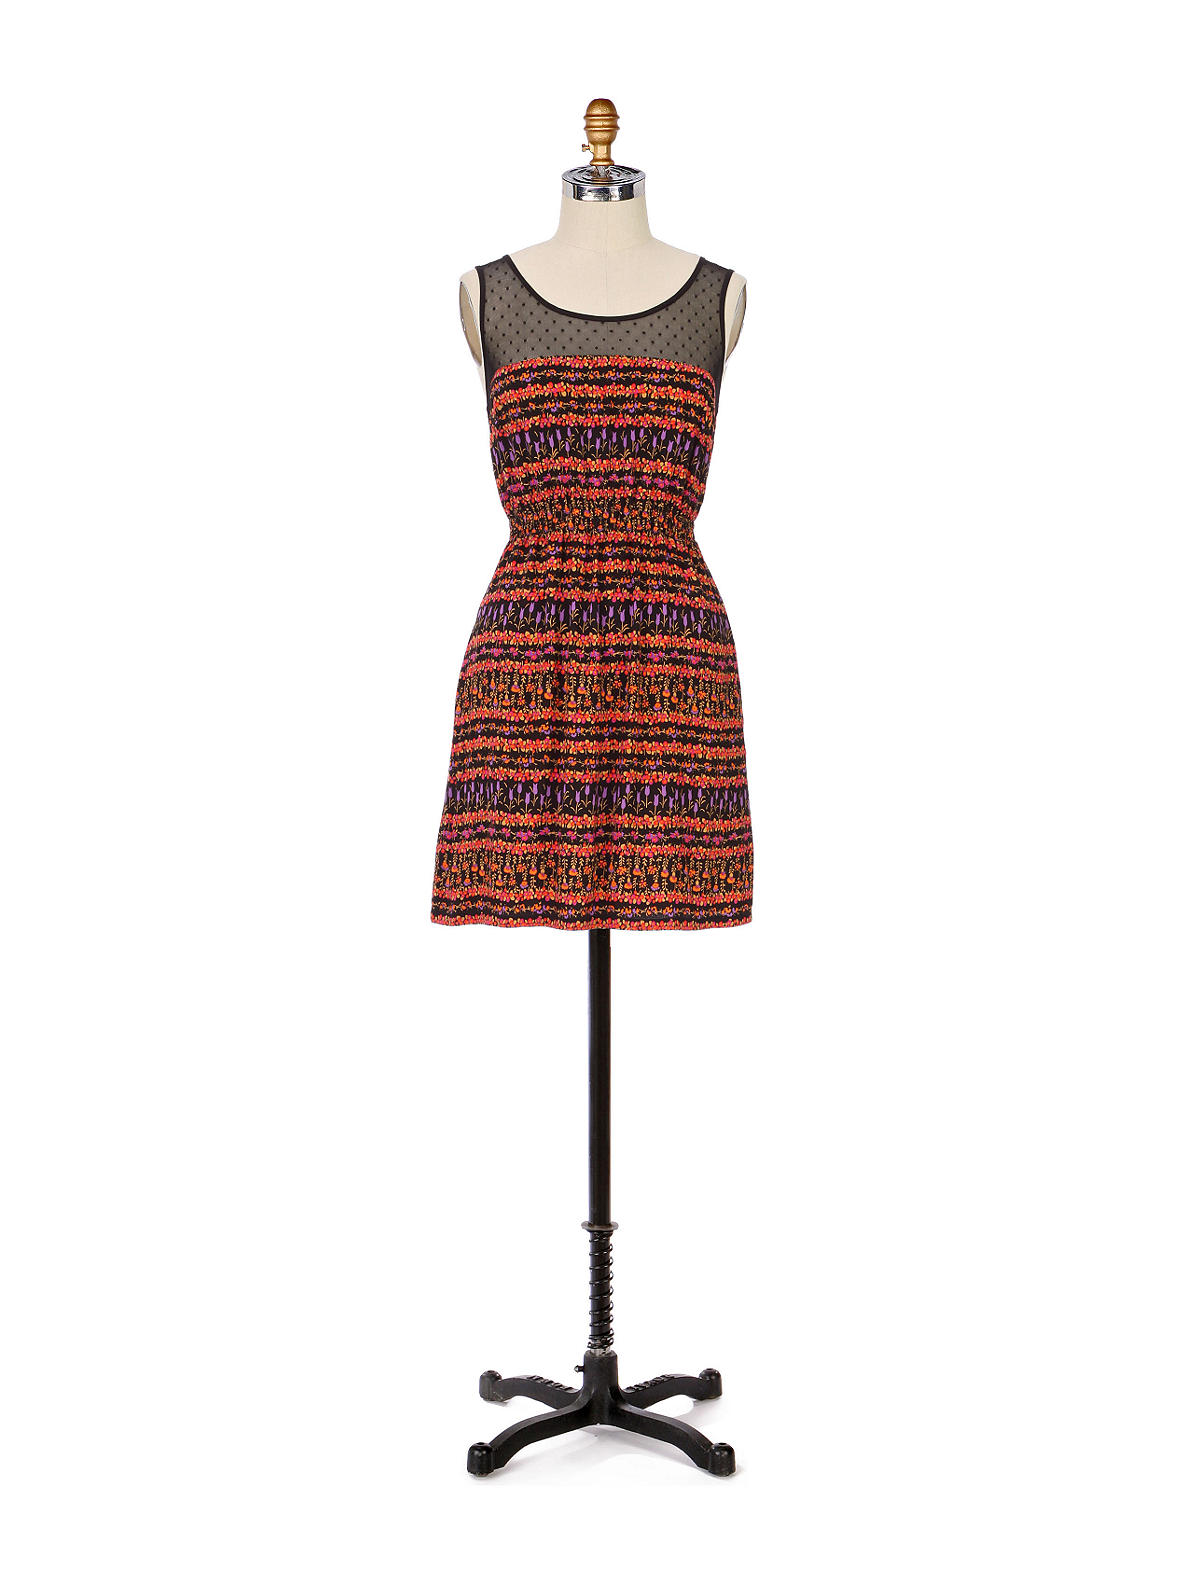 Maeve - Peppercorn Dress - Anthropologie.com